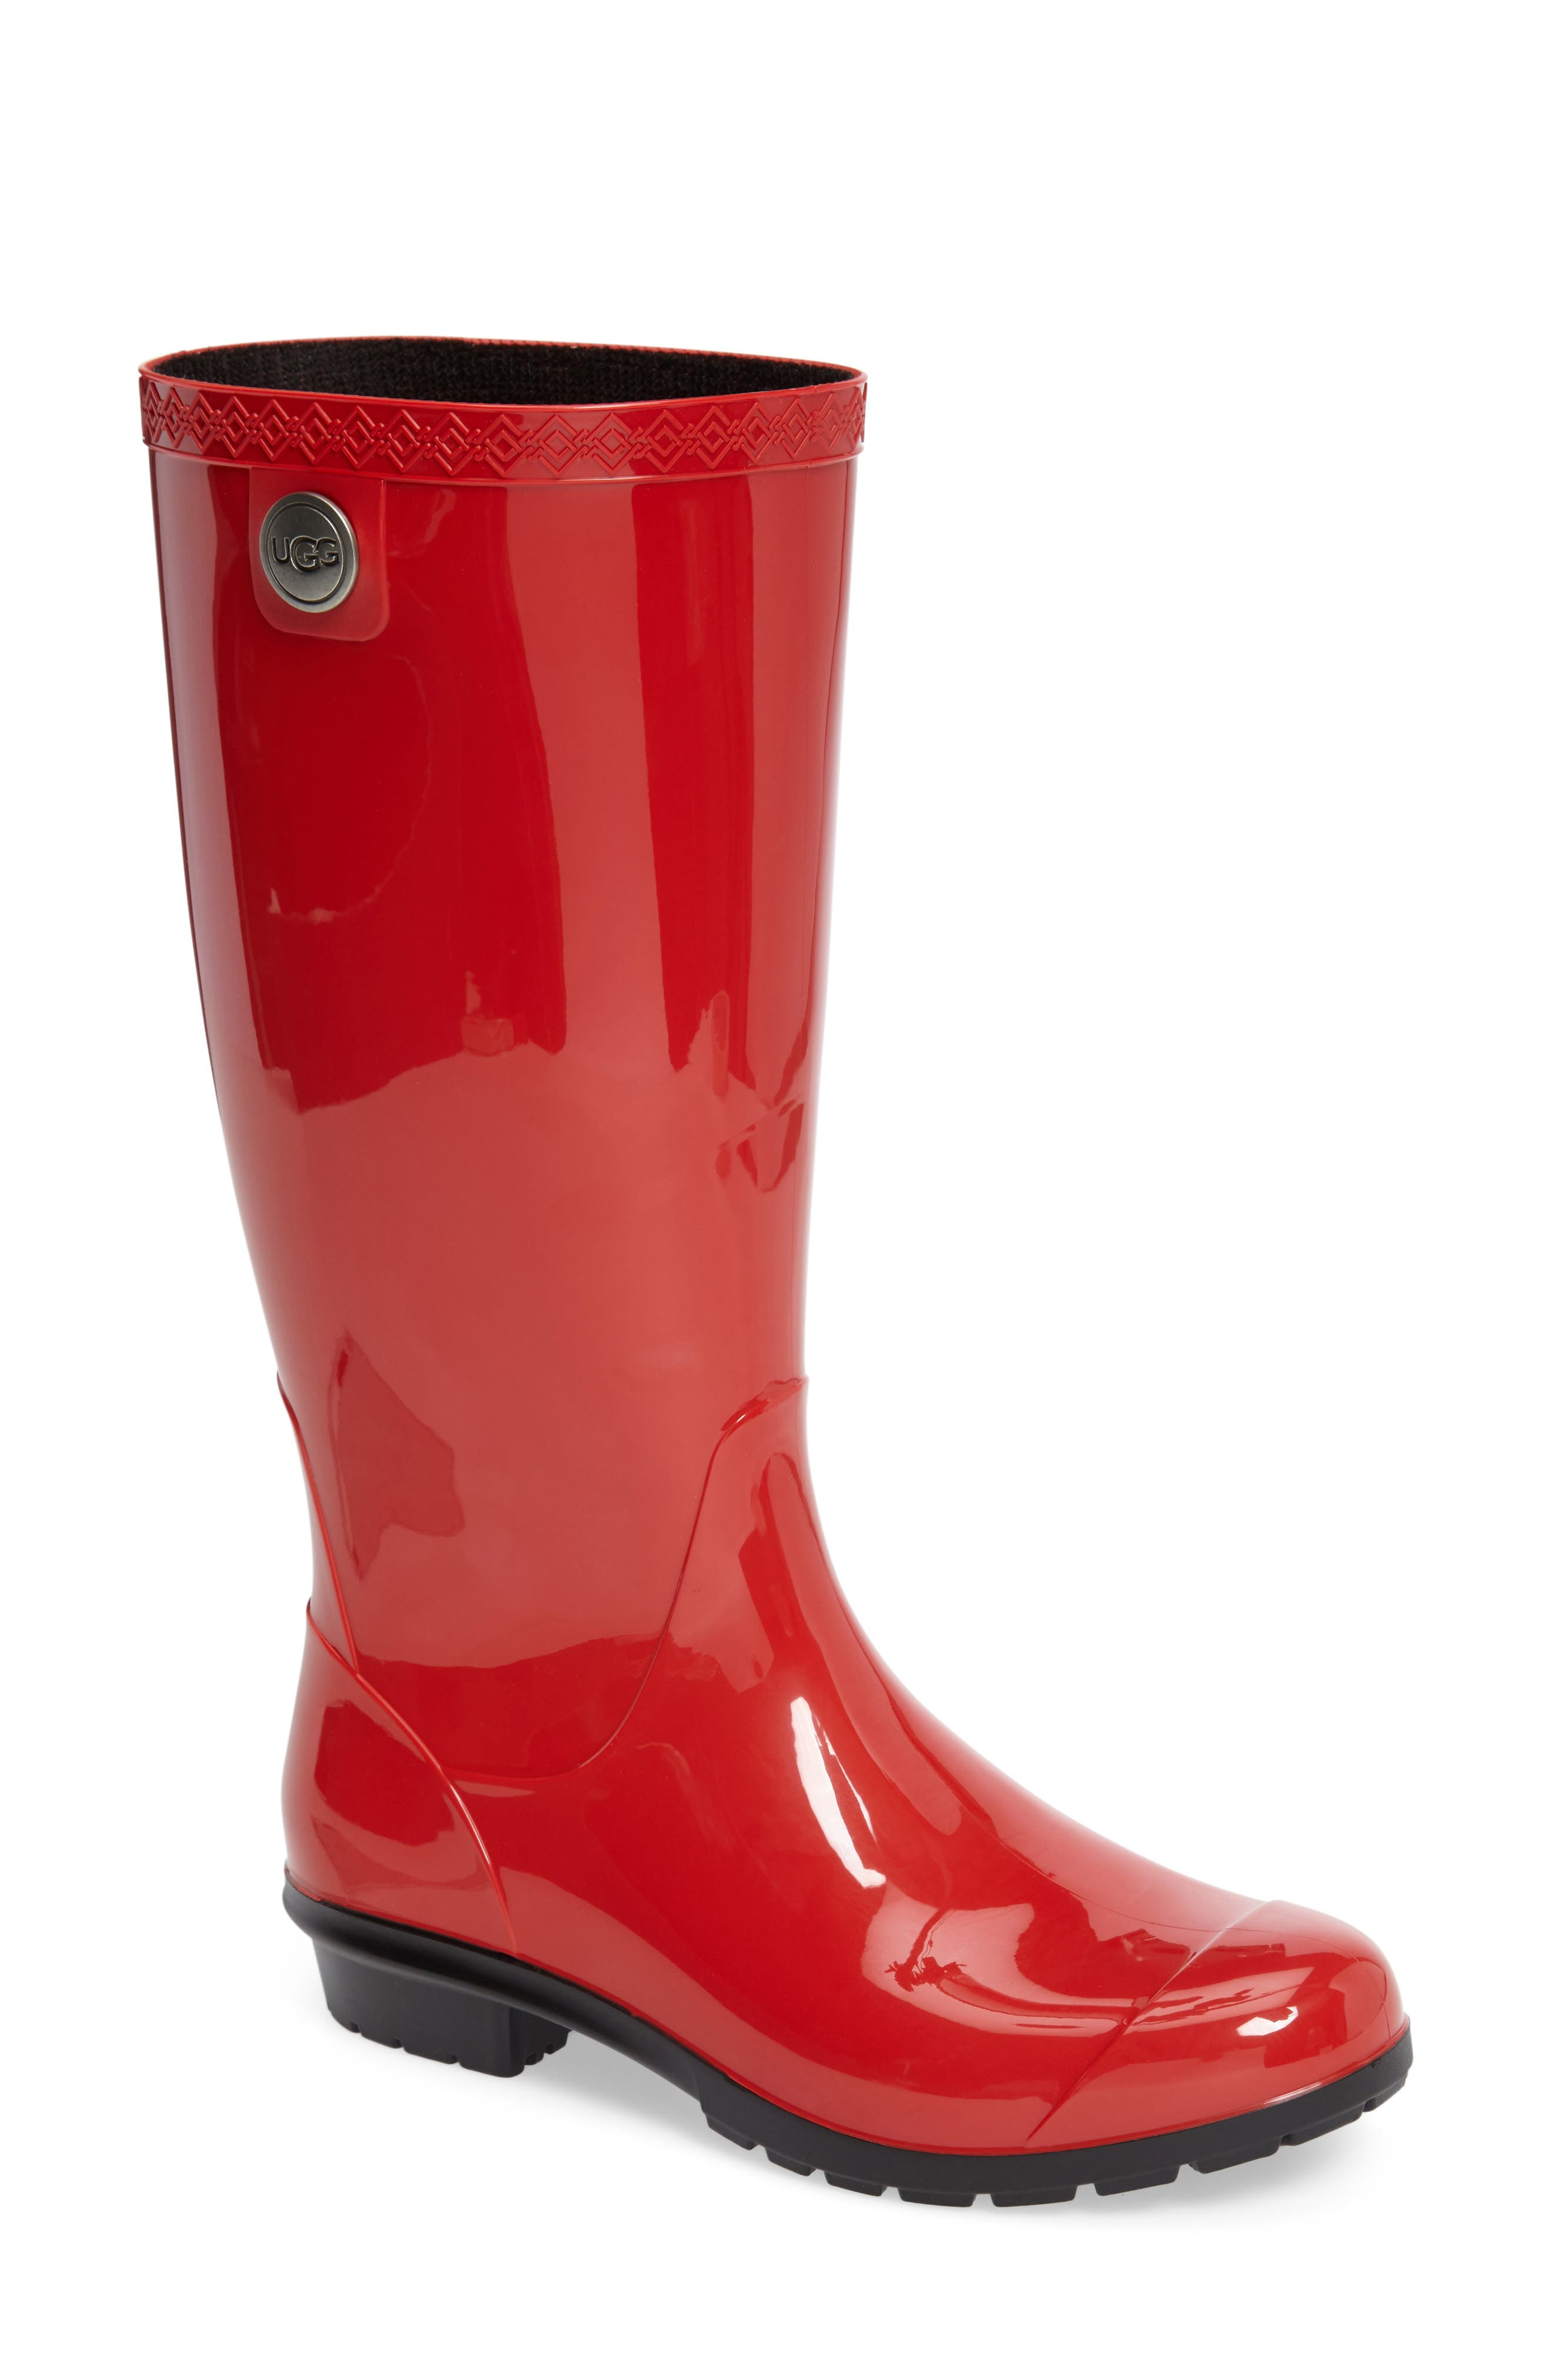 Main Image - UGG® 'Shaye' Rain Boot (Women)